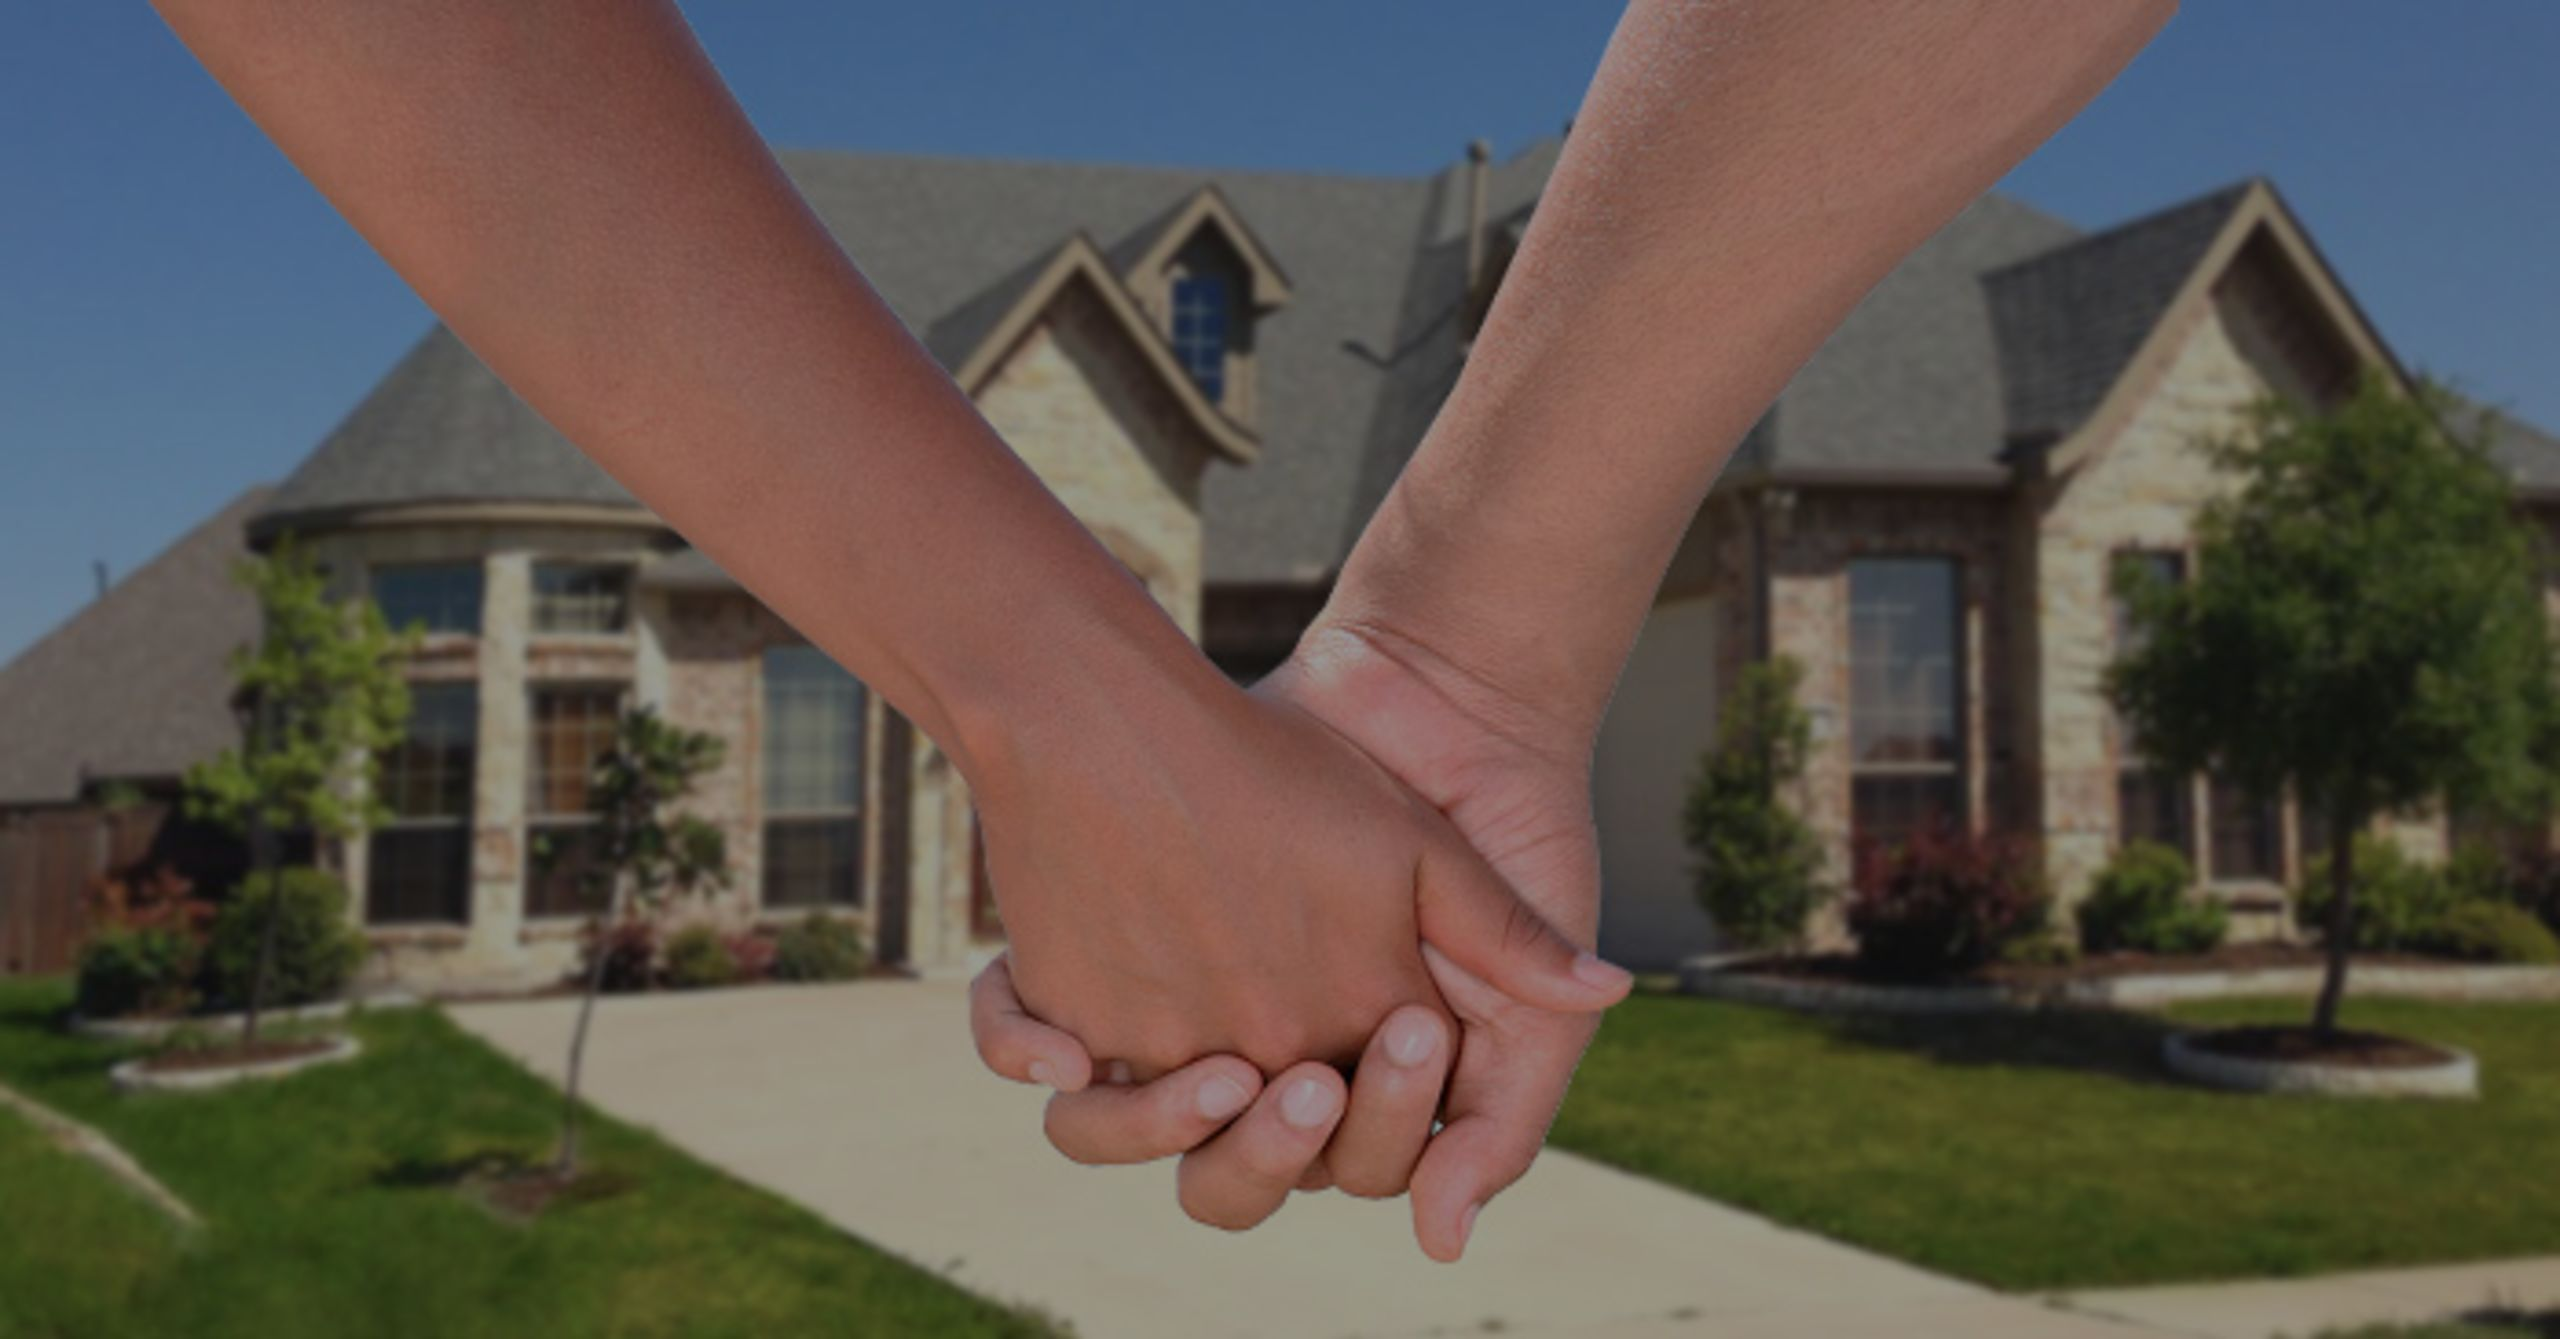 Don't Fall In Love With a House Until You Are Ready To Fully Commit